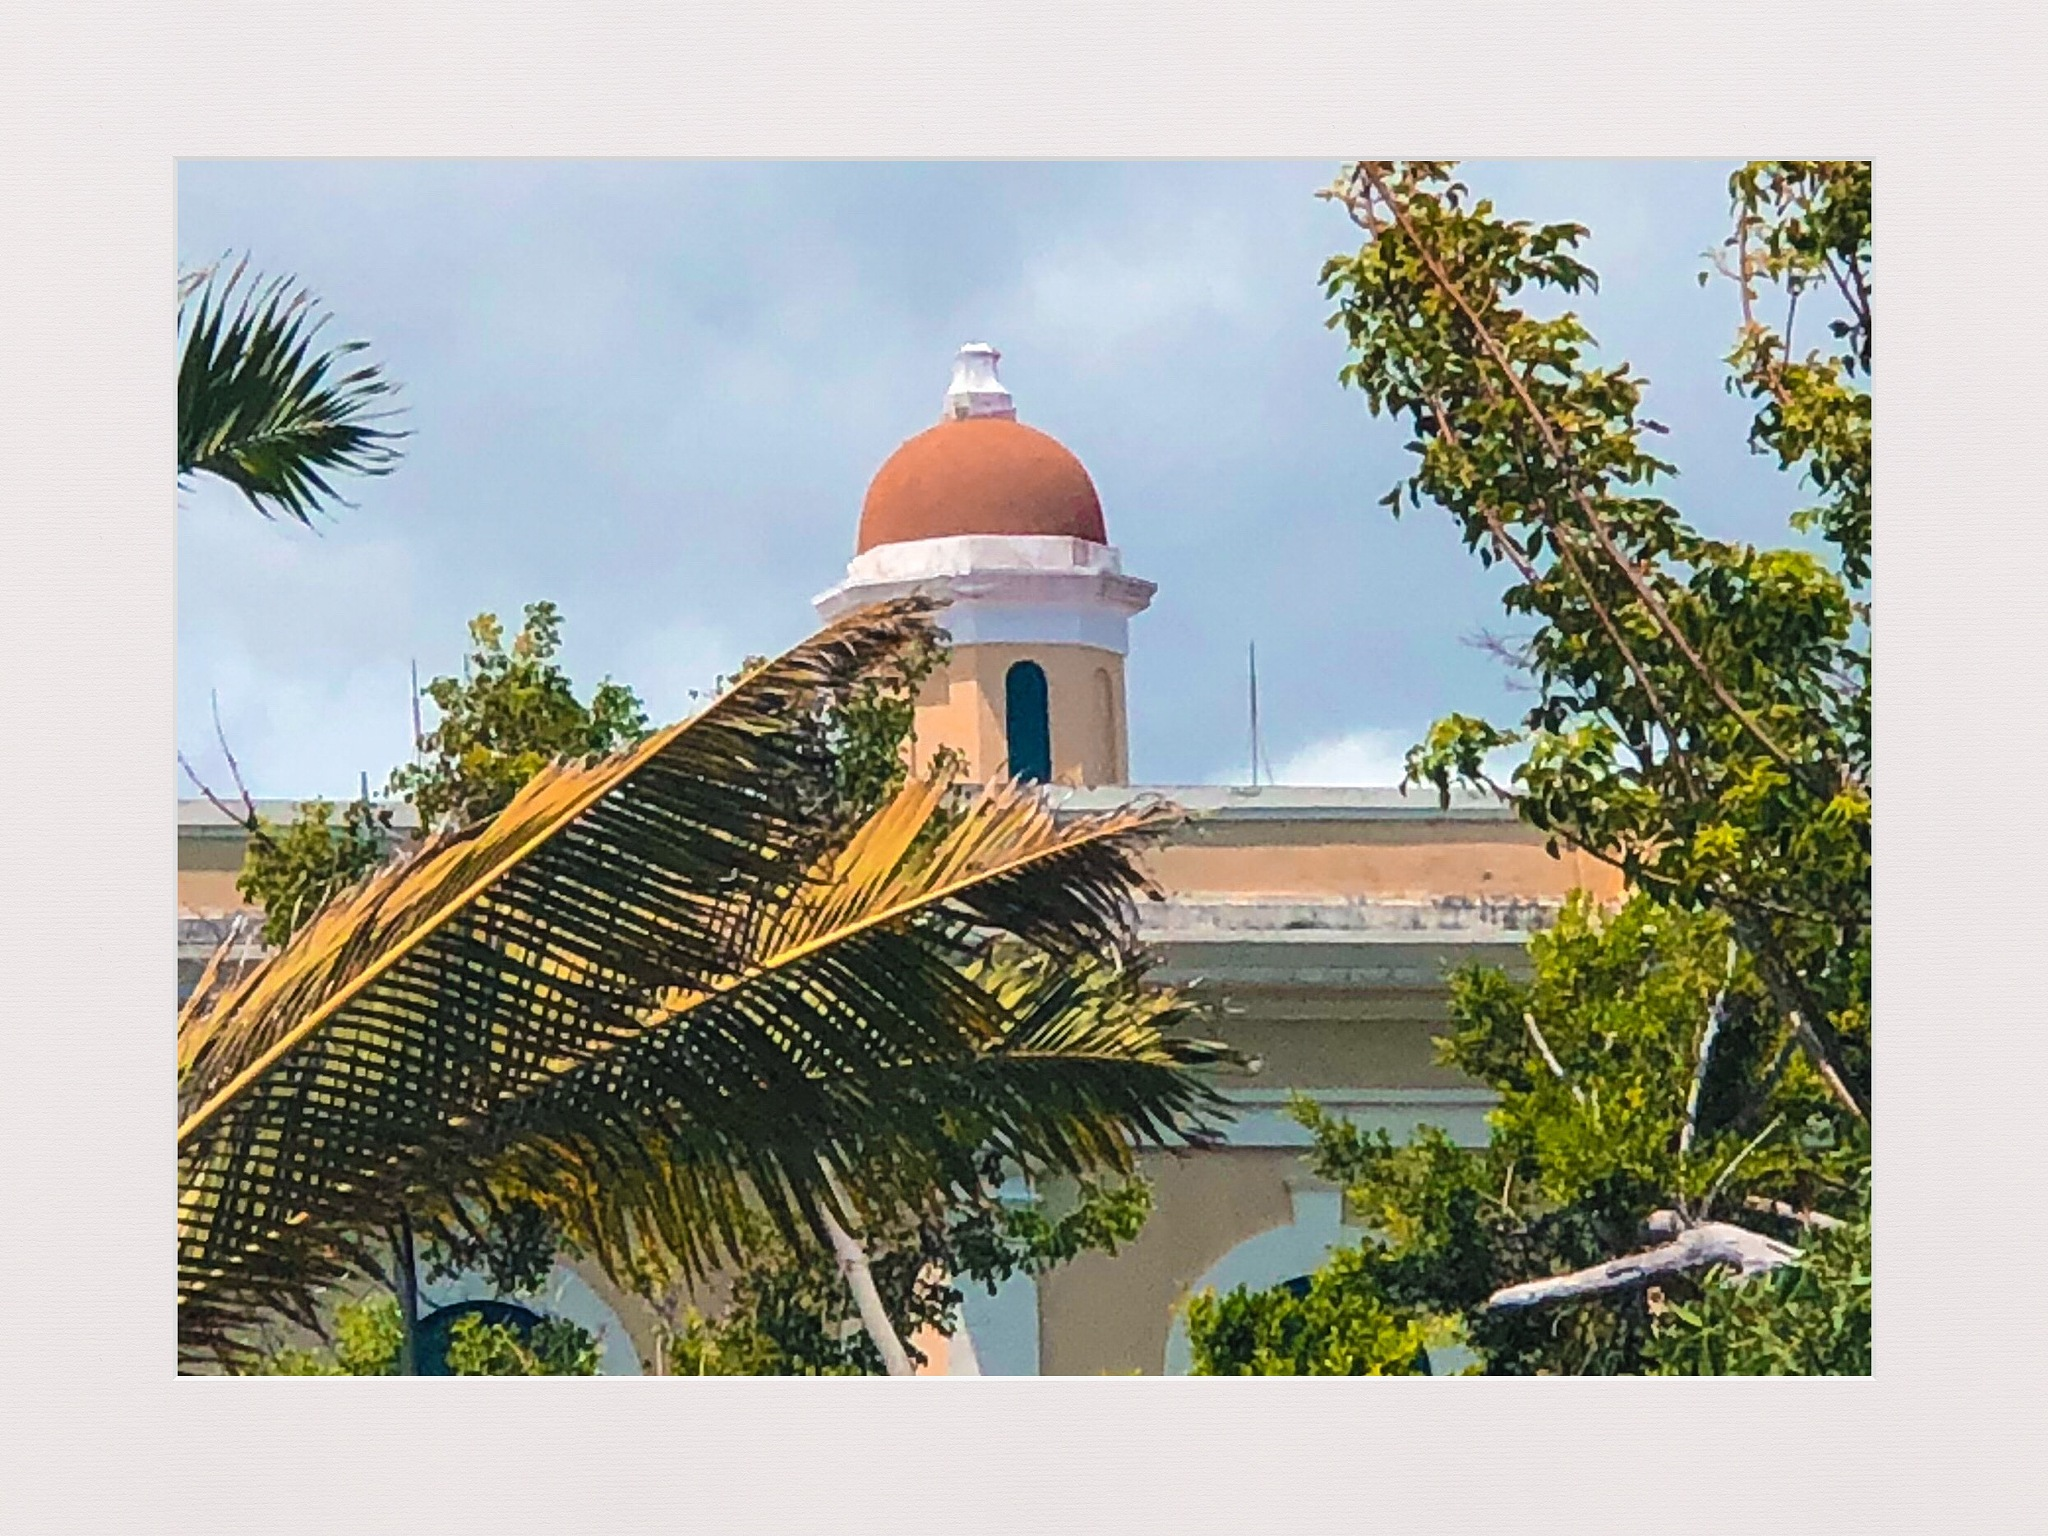 Dome of National Archives Building in Old San Juan. by castanerjuan